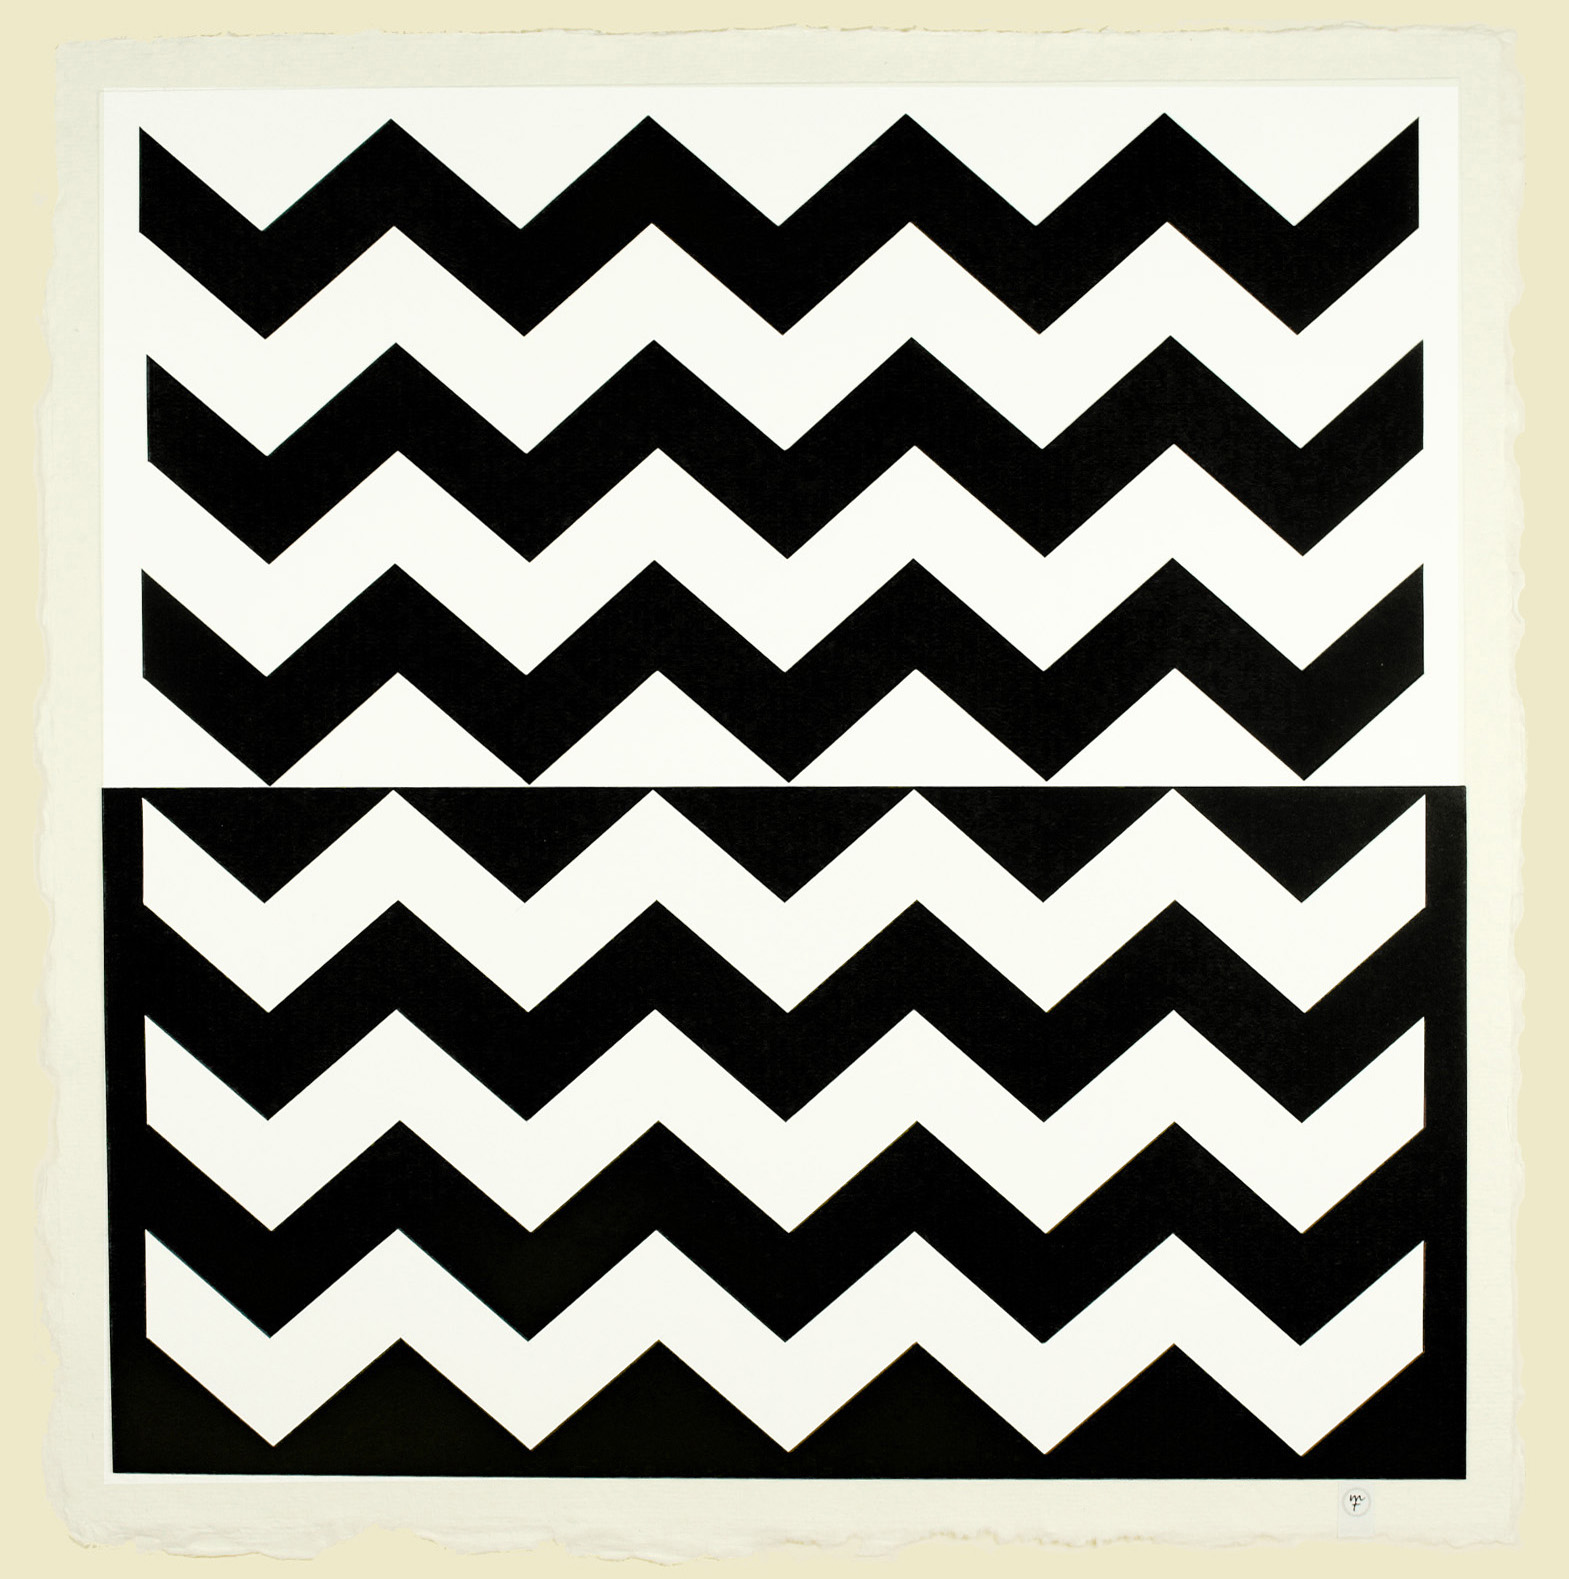 La Mer, paper-cut collage